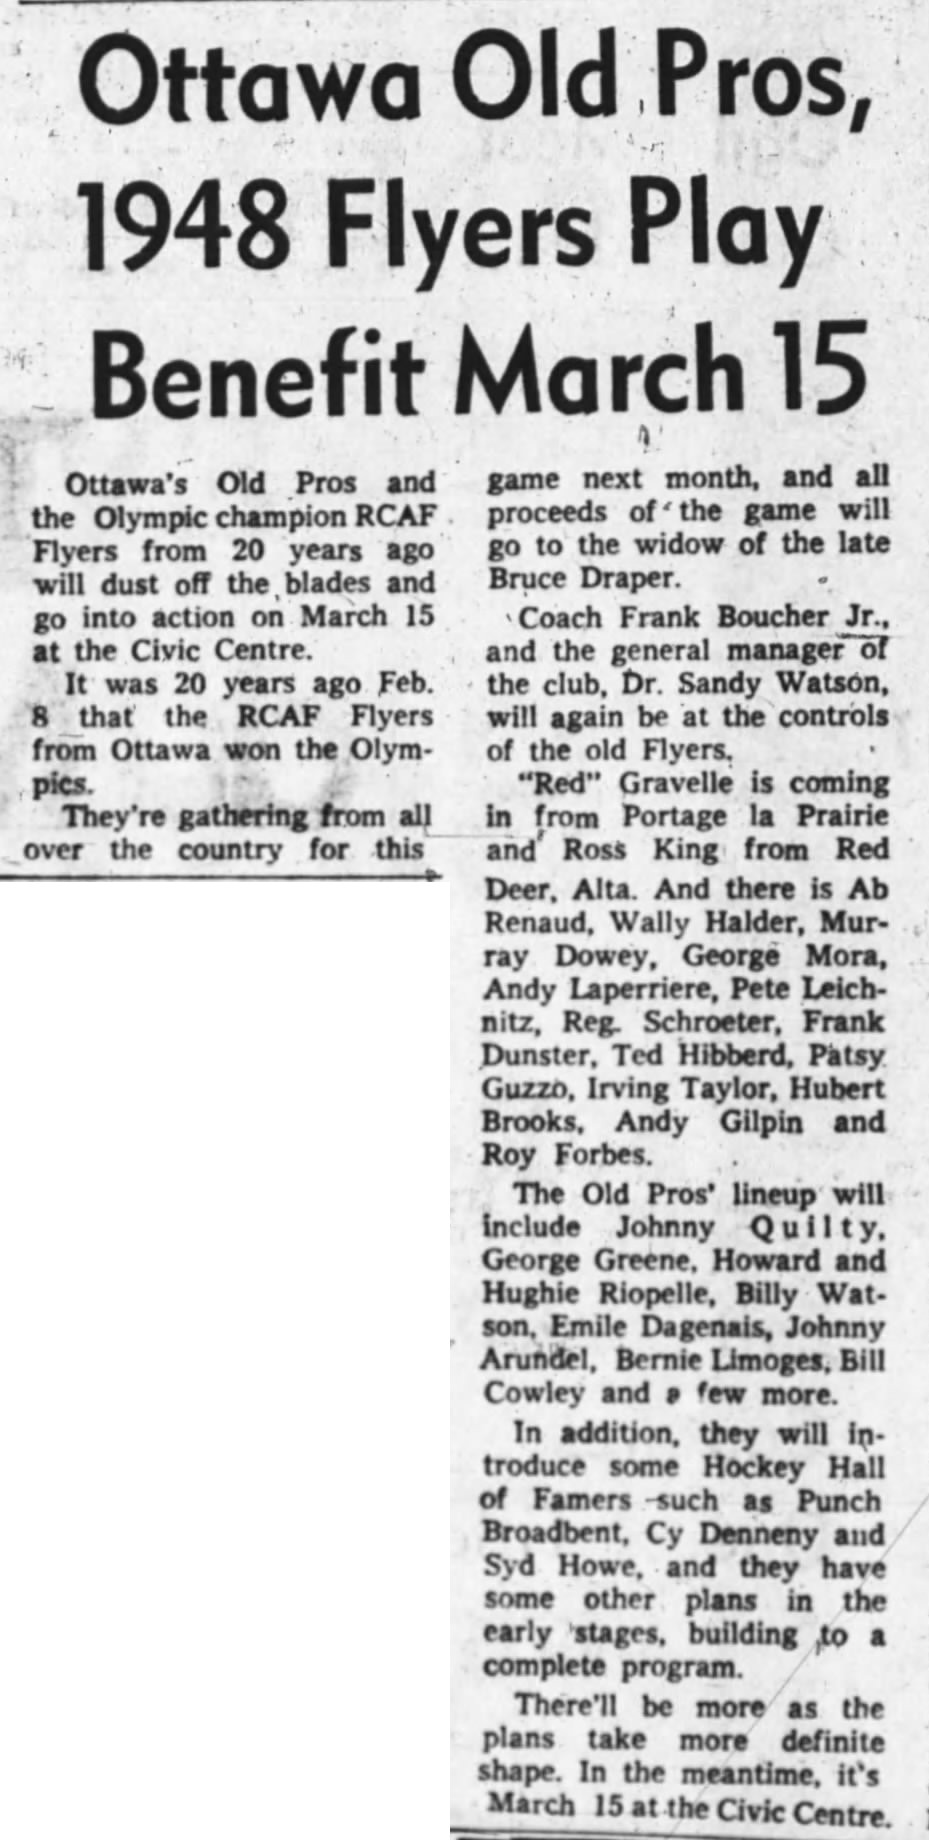 Image: Feb 27 1968 News Article  on 20th ANNIVERSARY 1948 –  R.C.A.F. FLYERS